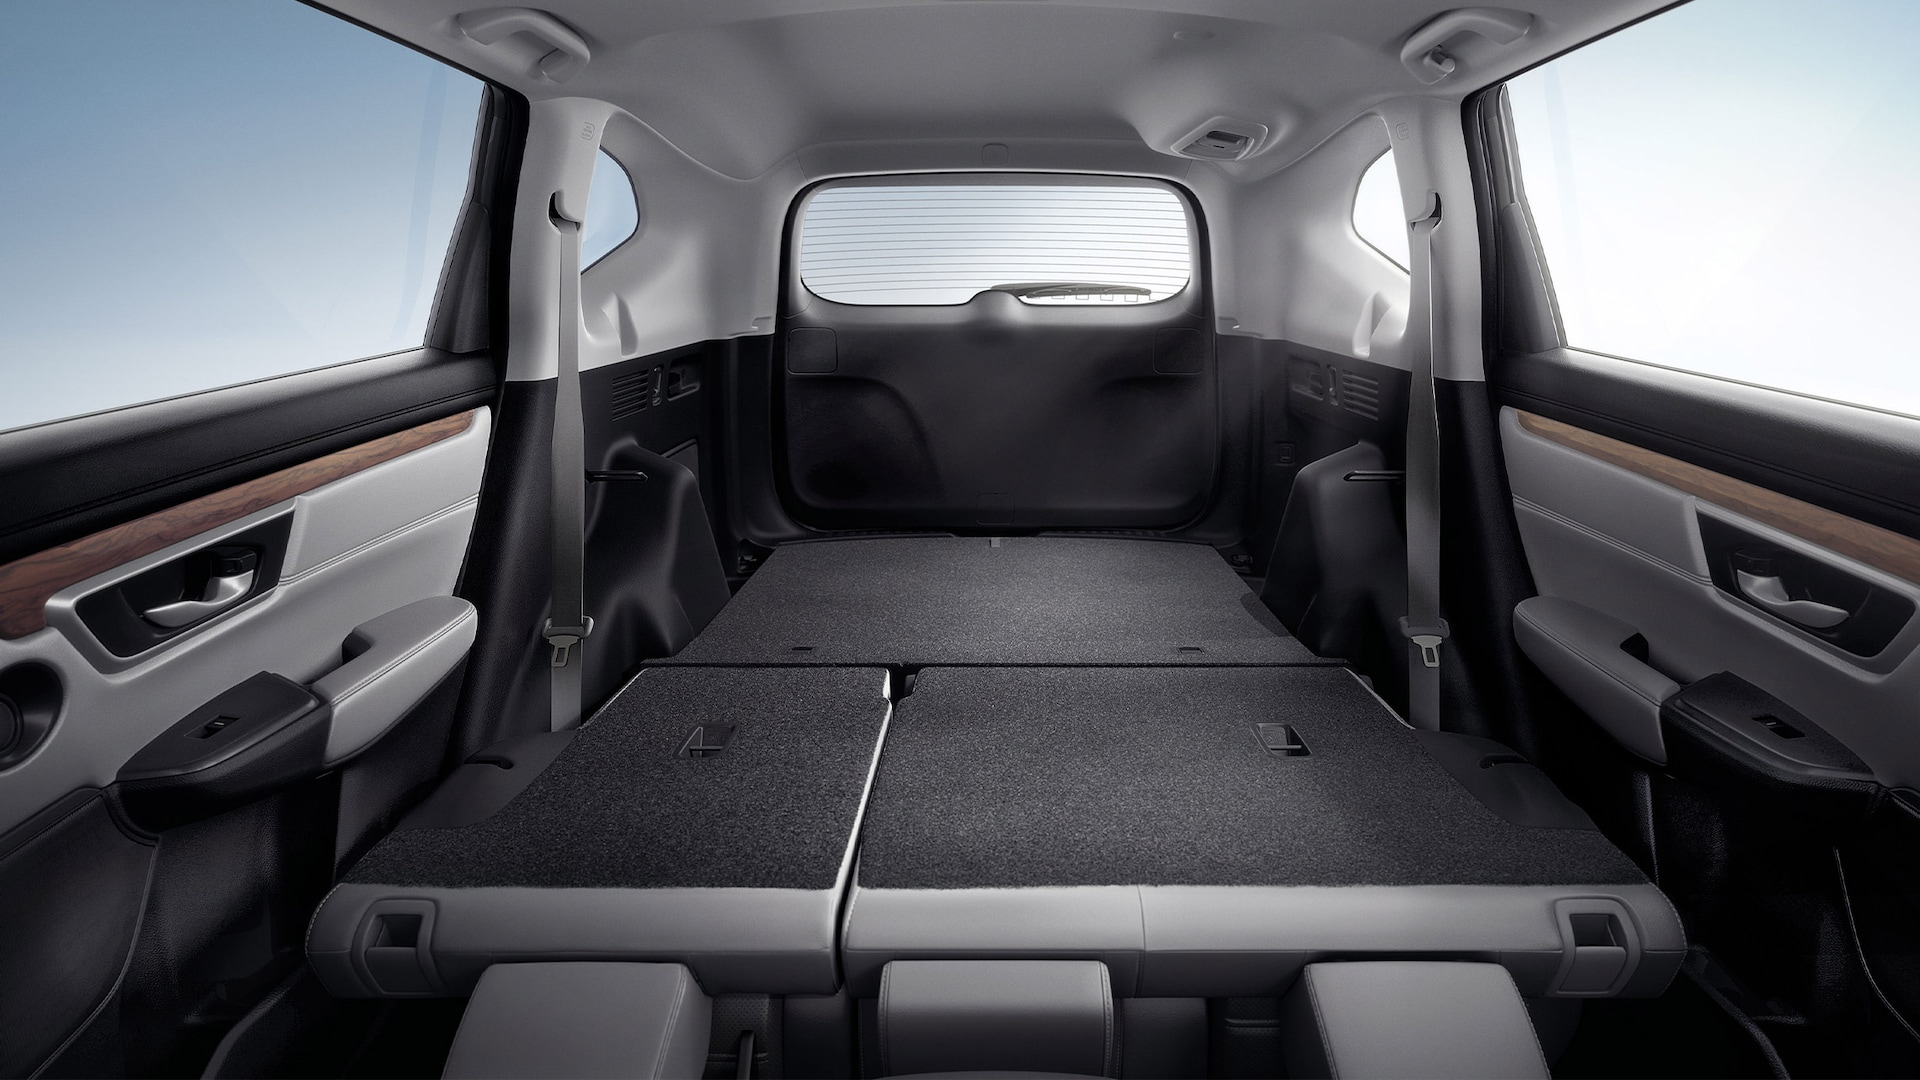 Interior view of 2020 Honda CR-V with Gray Leather demonstrating easy fold-down 60/40 split rear seatback.